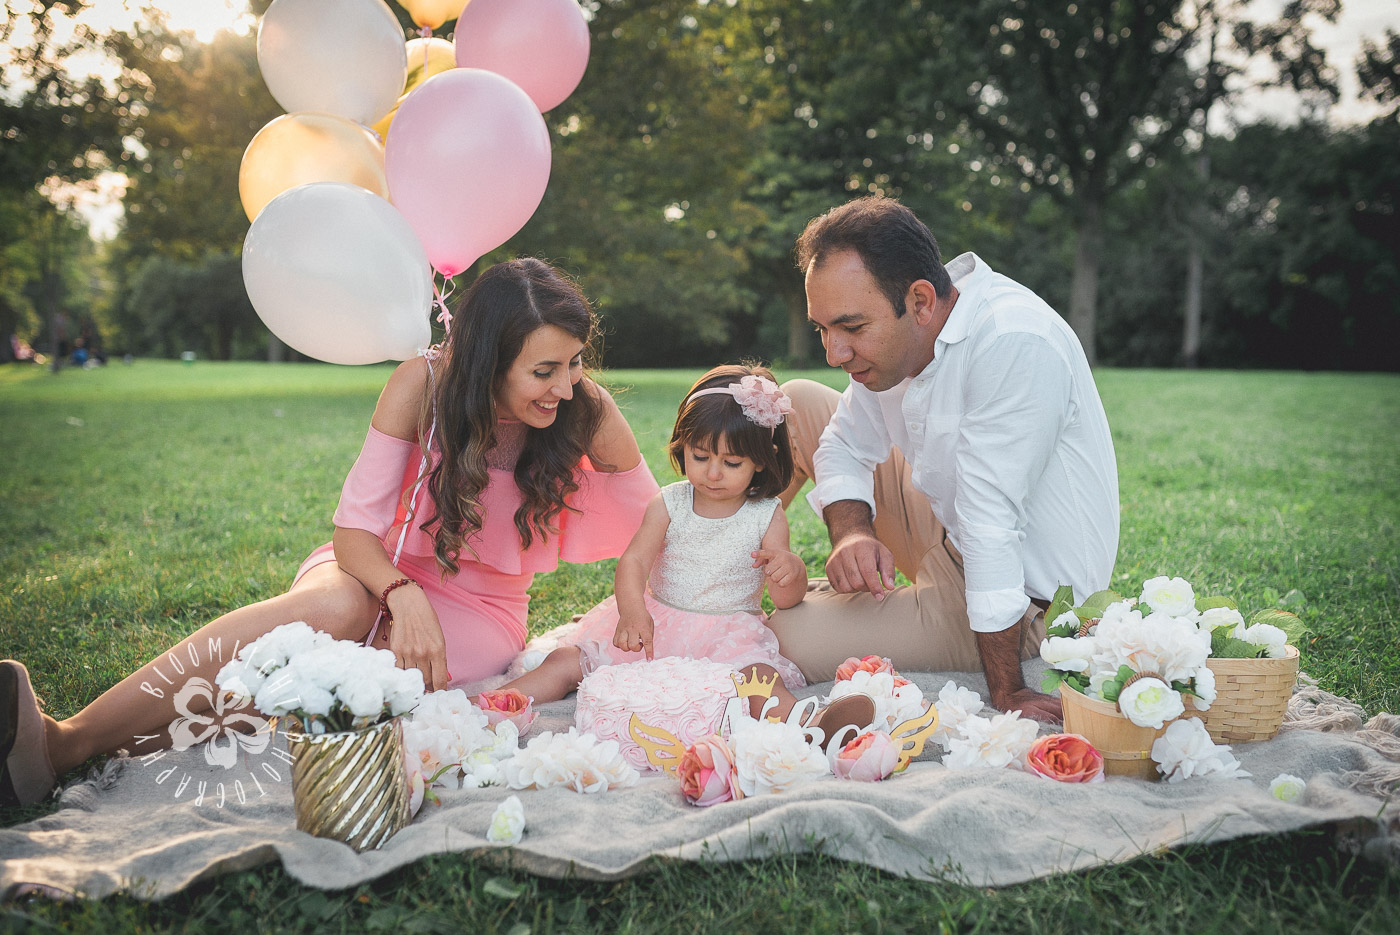 Second-Birthday-Outdoor-photo-Toronto-and NorthYork-baby-and-family-photographer (2).jpg